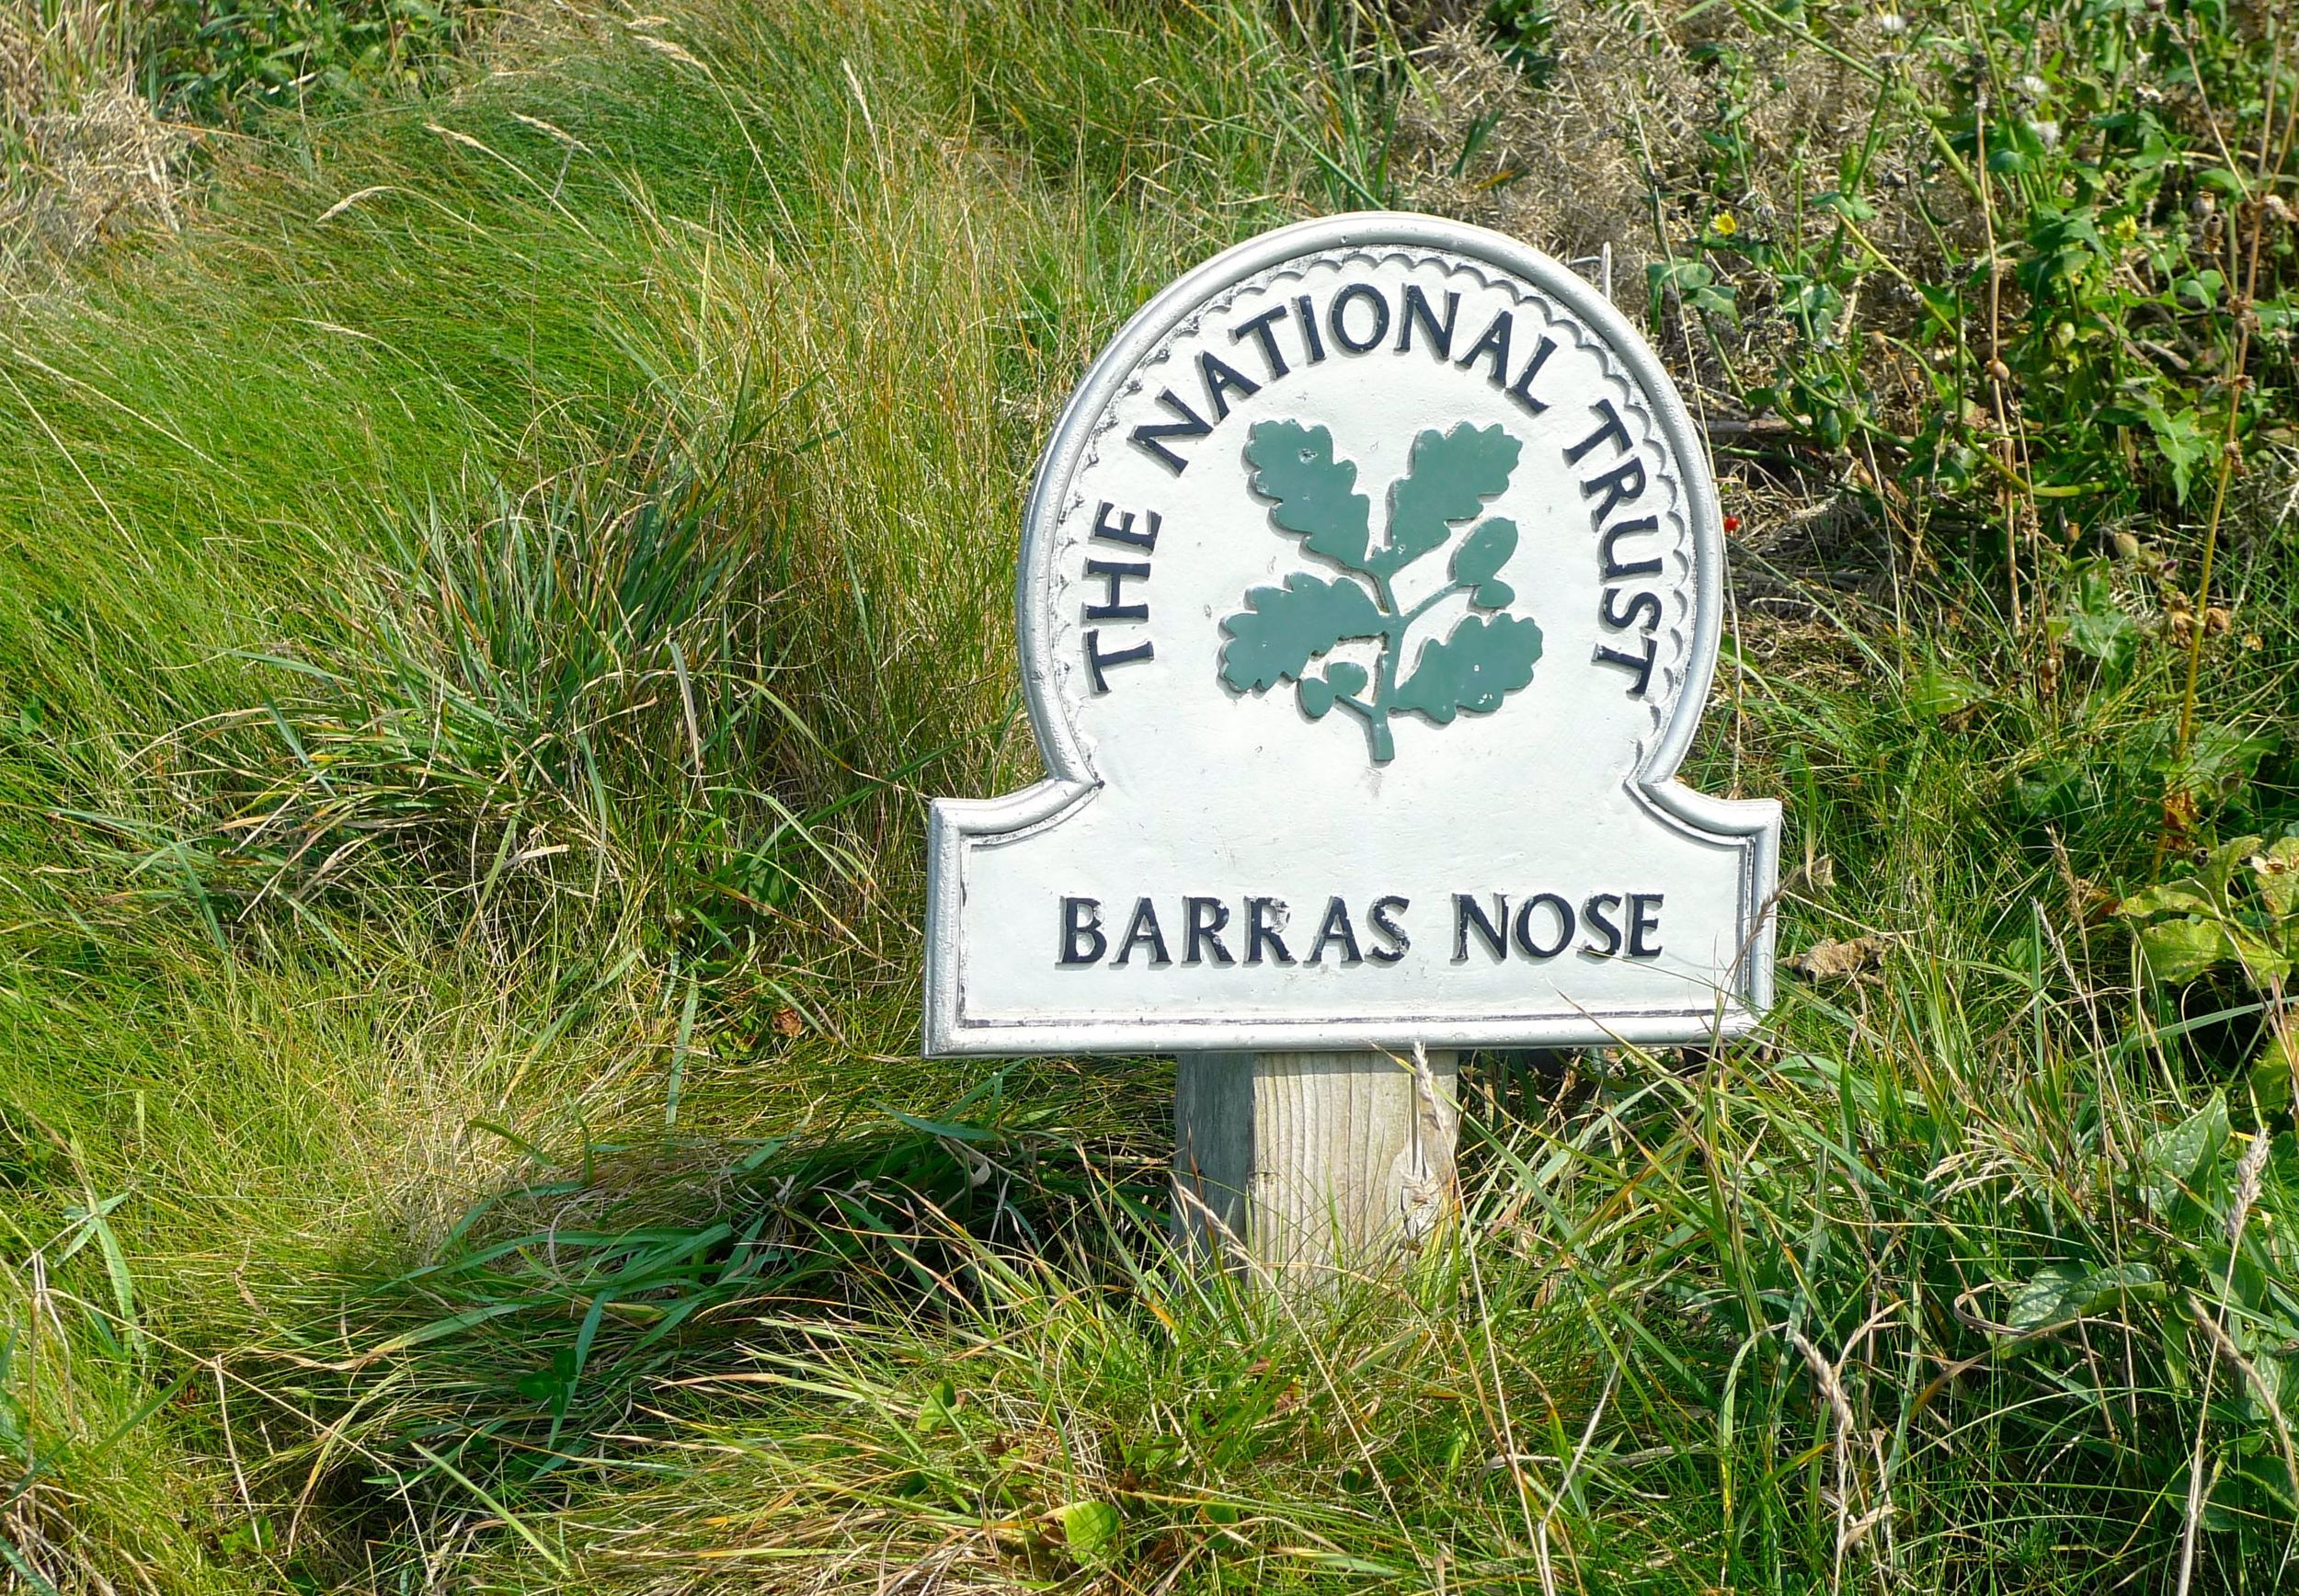 Barras Nose National Trust